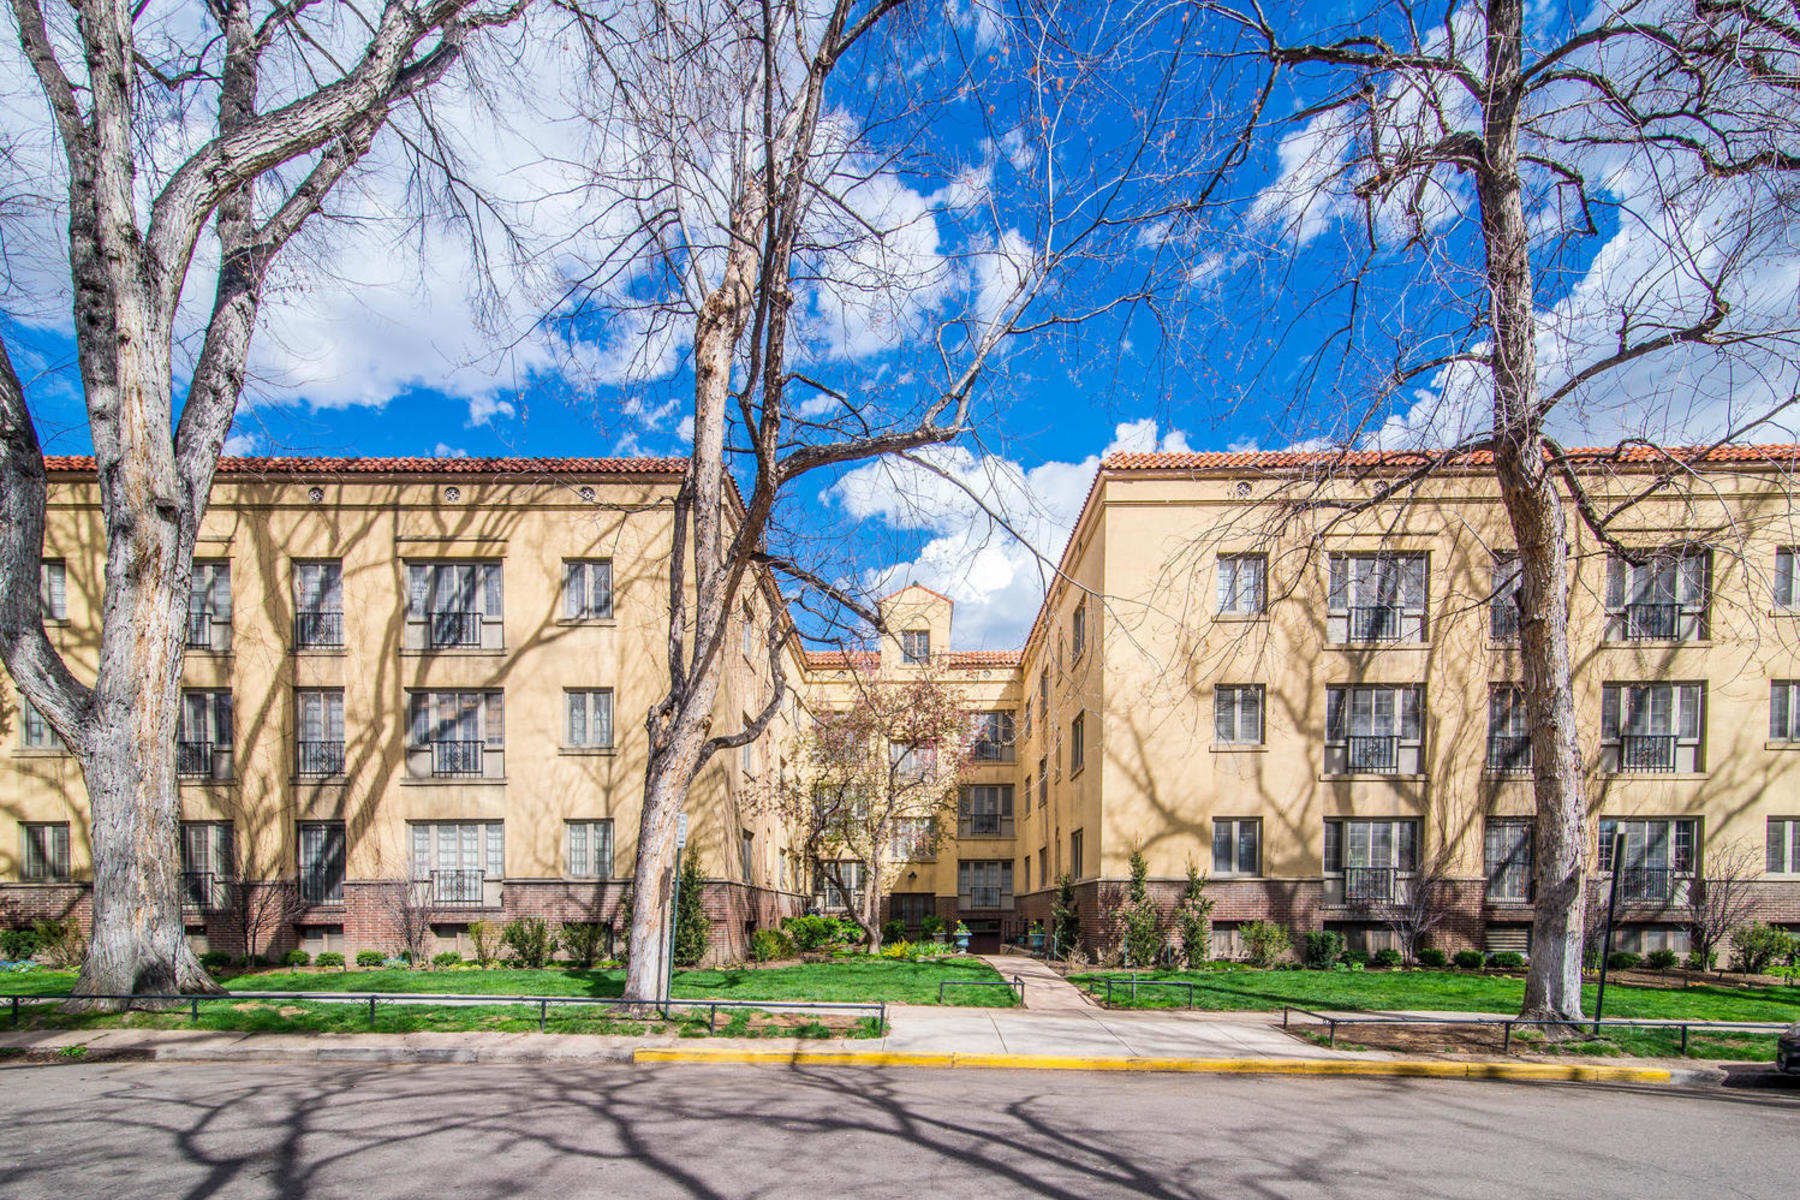 Property для того Продажа на Published in 5280 Home Magazine! 1515 E 9th Avenue Unit #312, Denver, Колорадо 80218 Соединенные Штаты